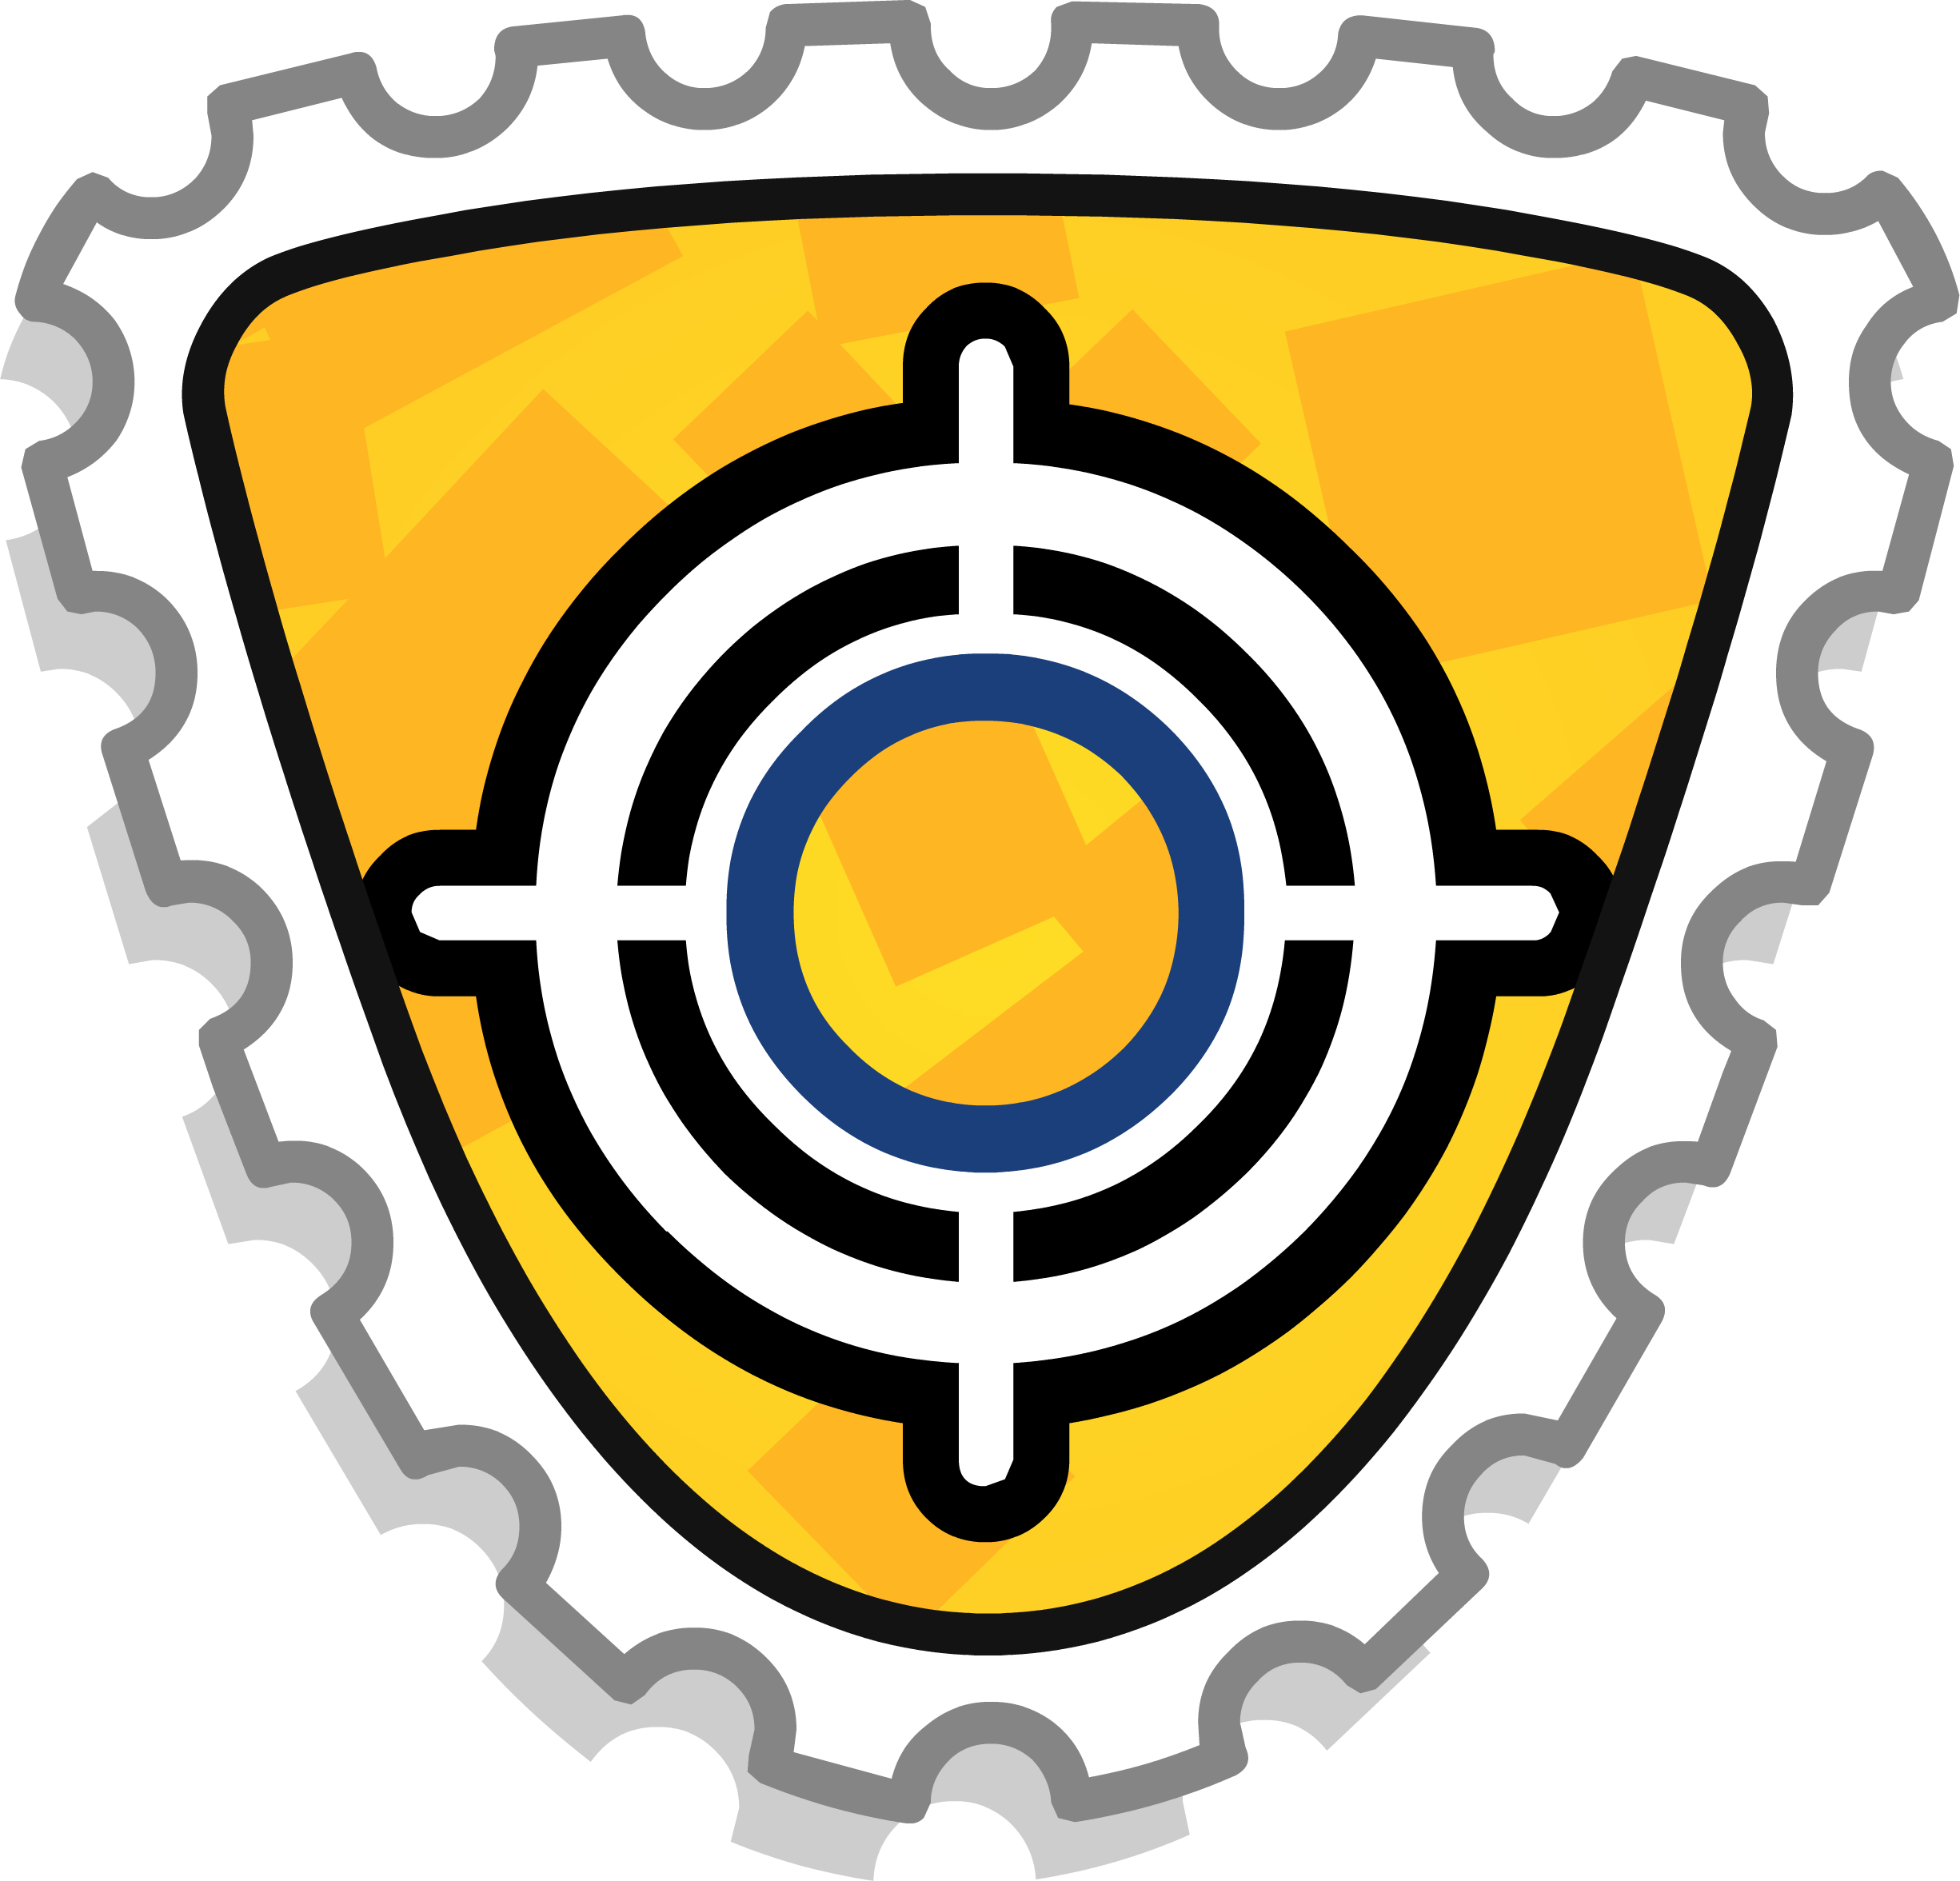 Target champion stamp club. Maze clipart medium difficulty